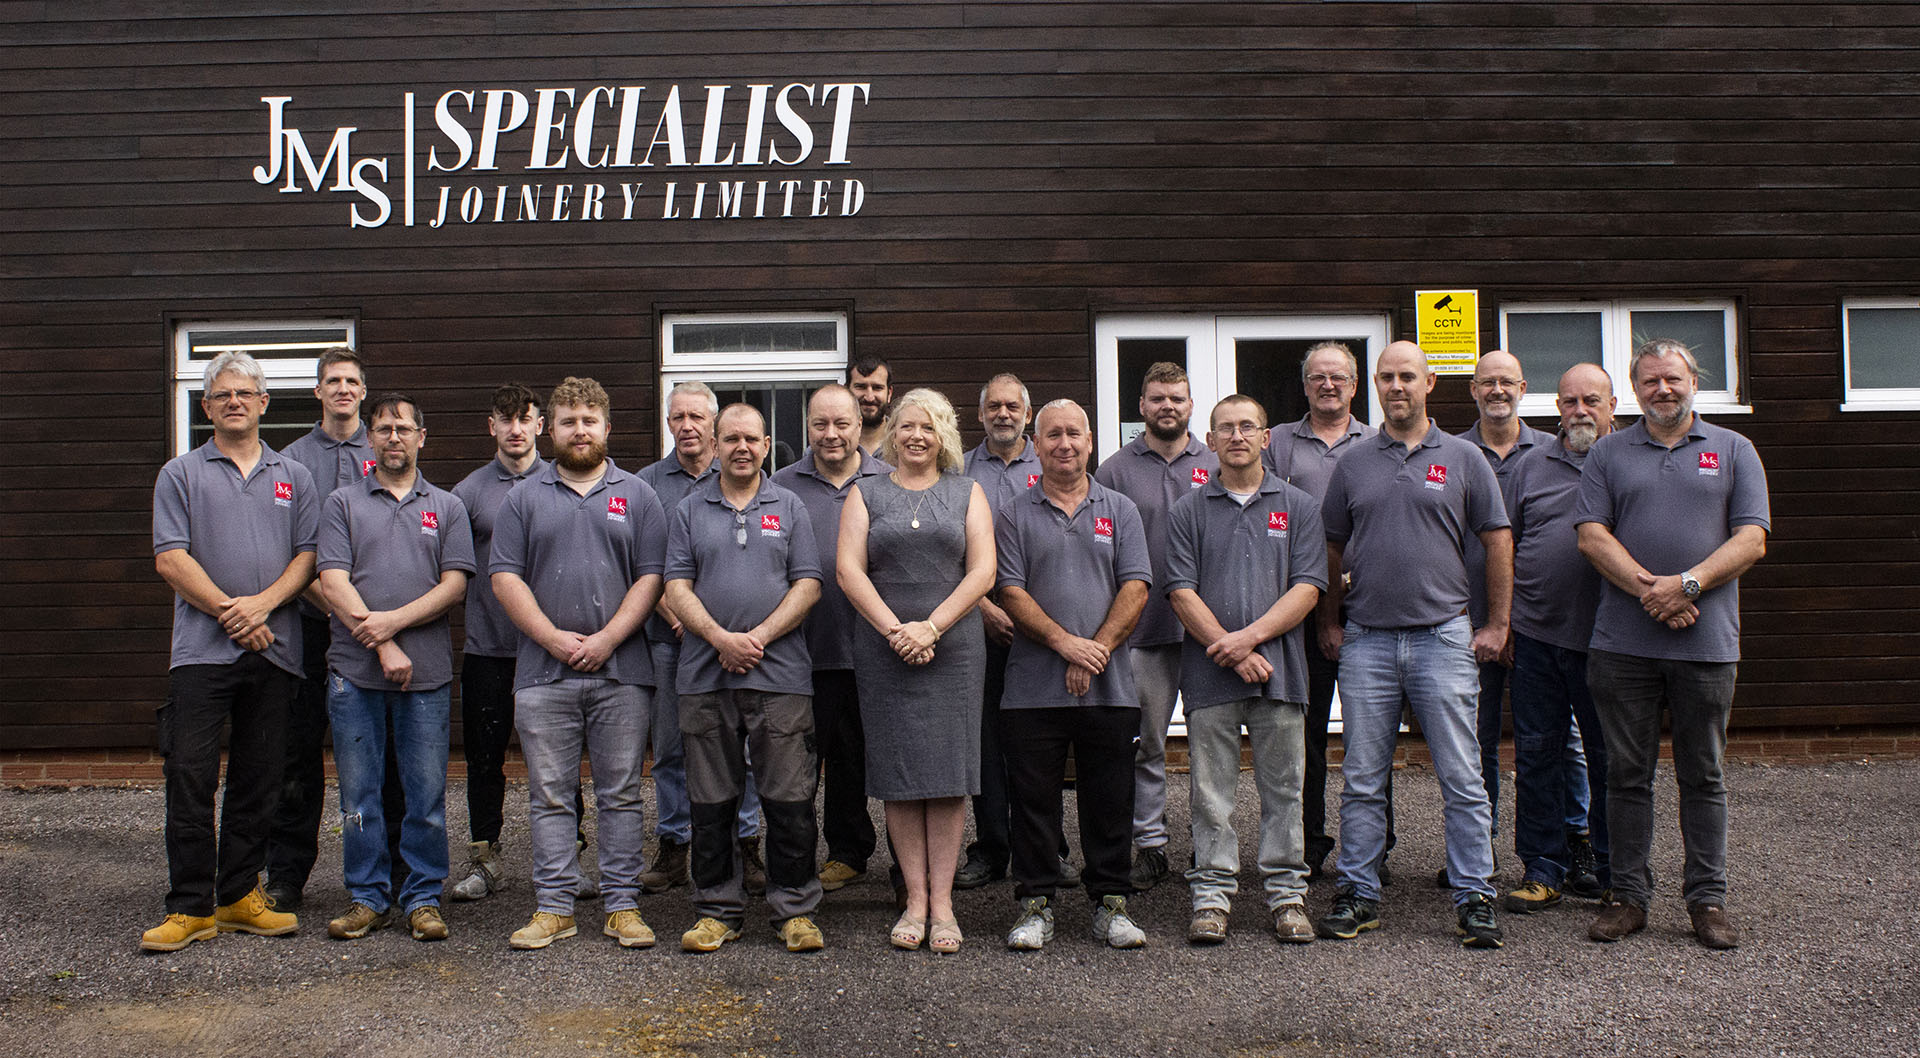 About JMS Specialist Joinery